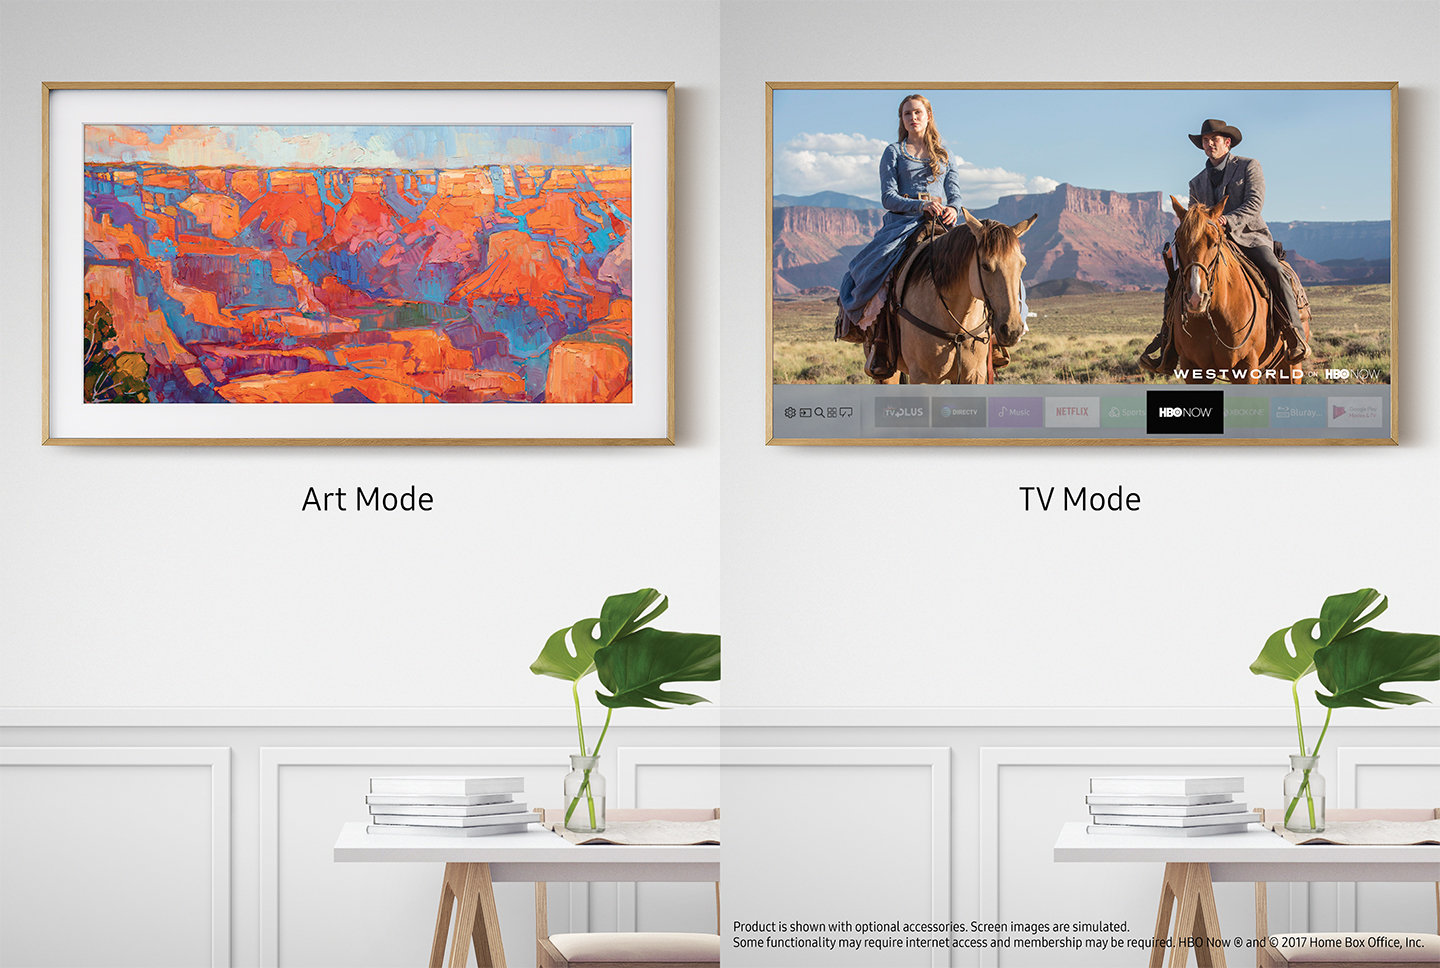 Samsung Launches A New Frame Tv With Design And Feature Improvements